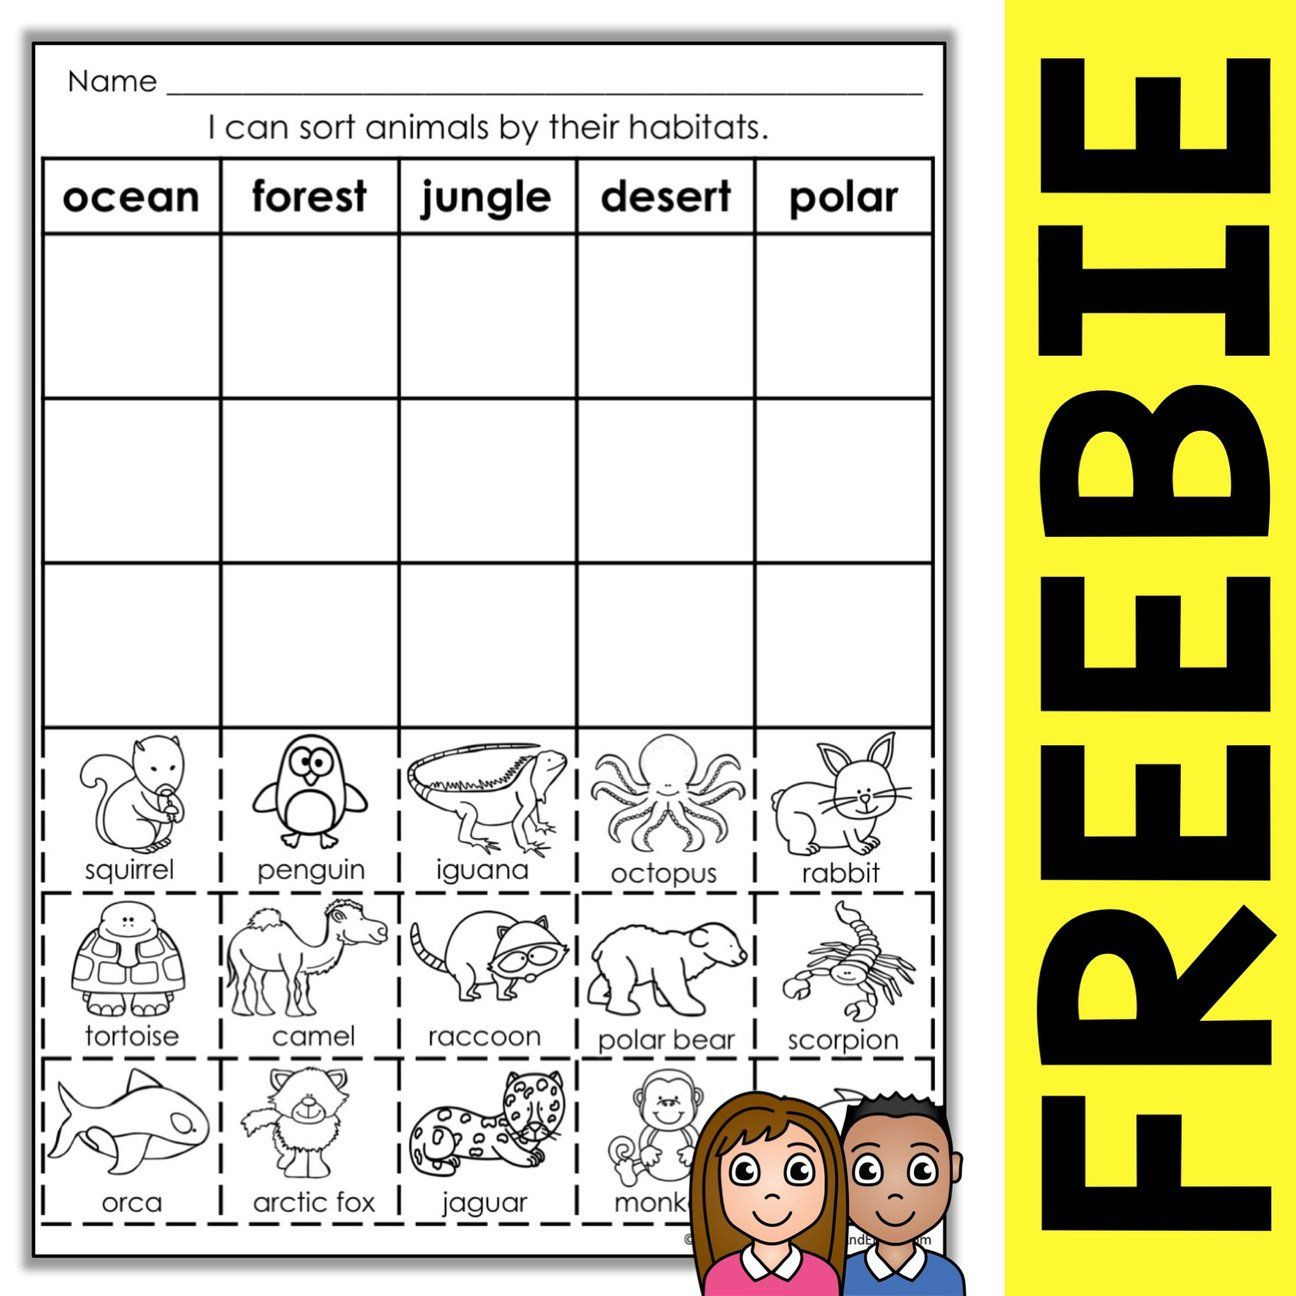 Habitat Worksheets for 1st Grade Free Animal Habitat sort Activity – Nicole and Eliceo